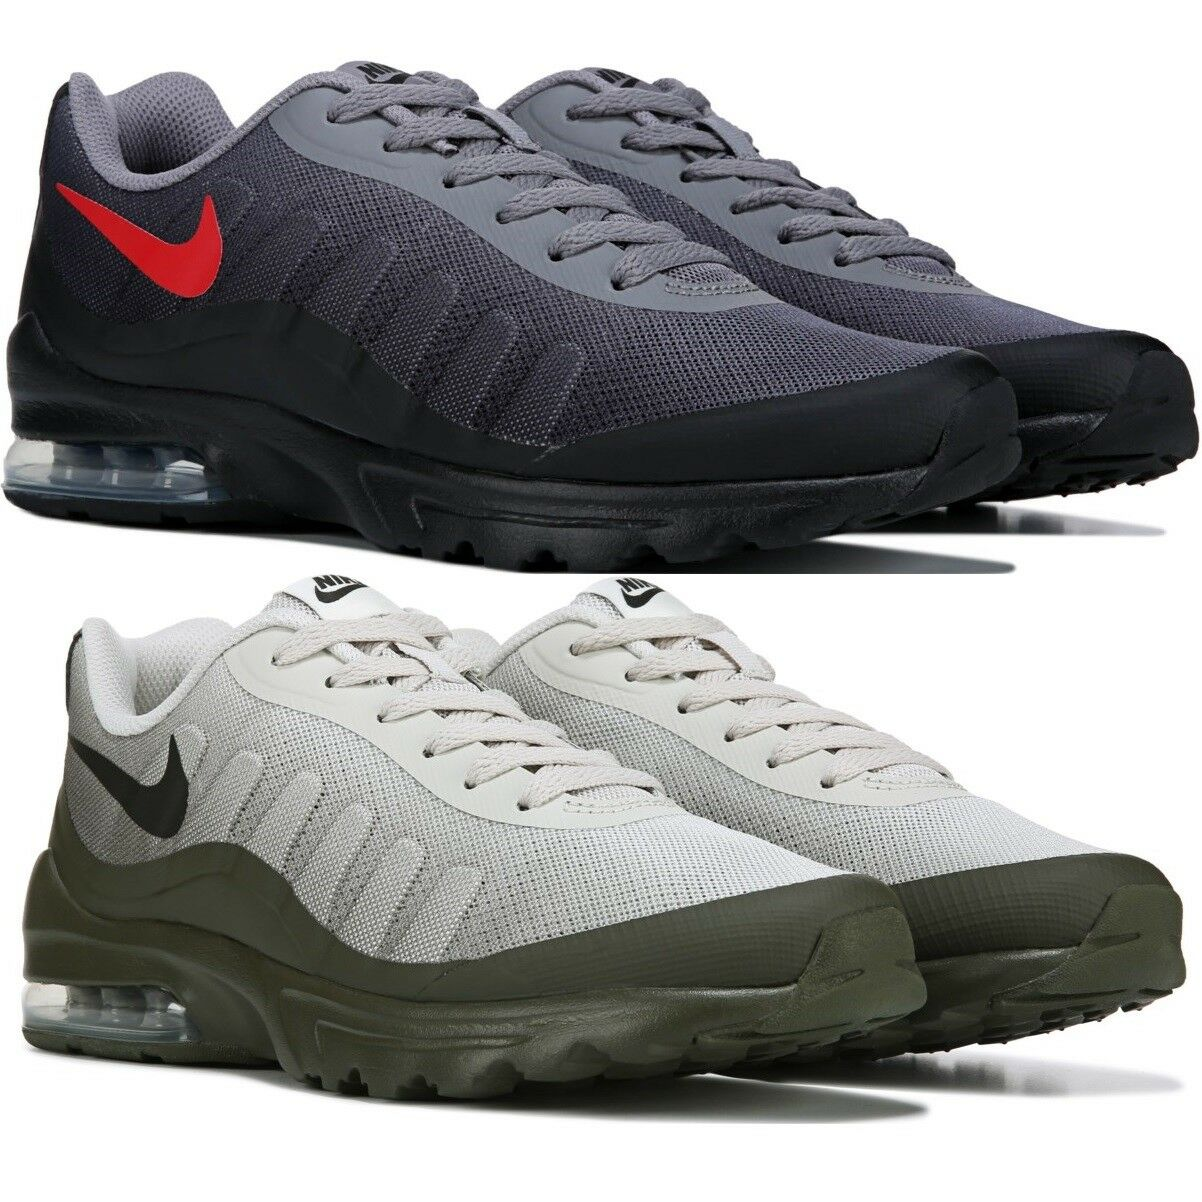 NIKE AIR MAX INVIGOR MEN'S RUNNING SHOES BREATHABLE LIFESTYLE COMFY SNEAKERS